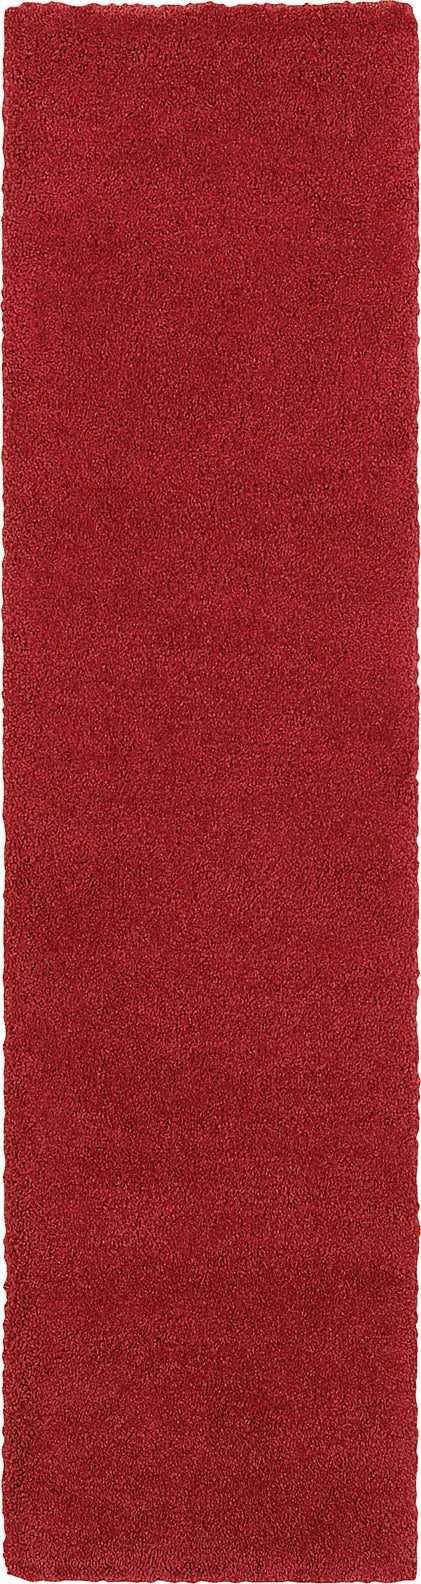 Pantone Universe Focus 4849F Red/ Red Area Rug main image